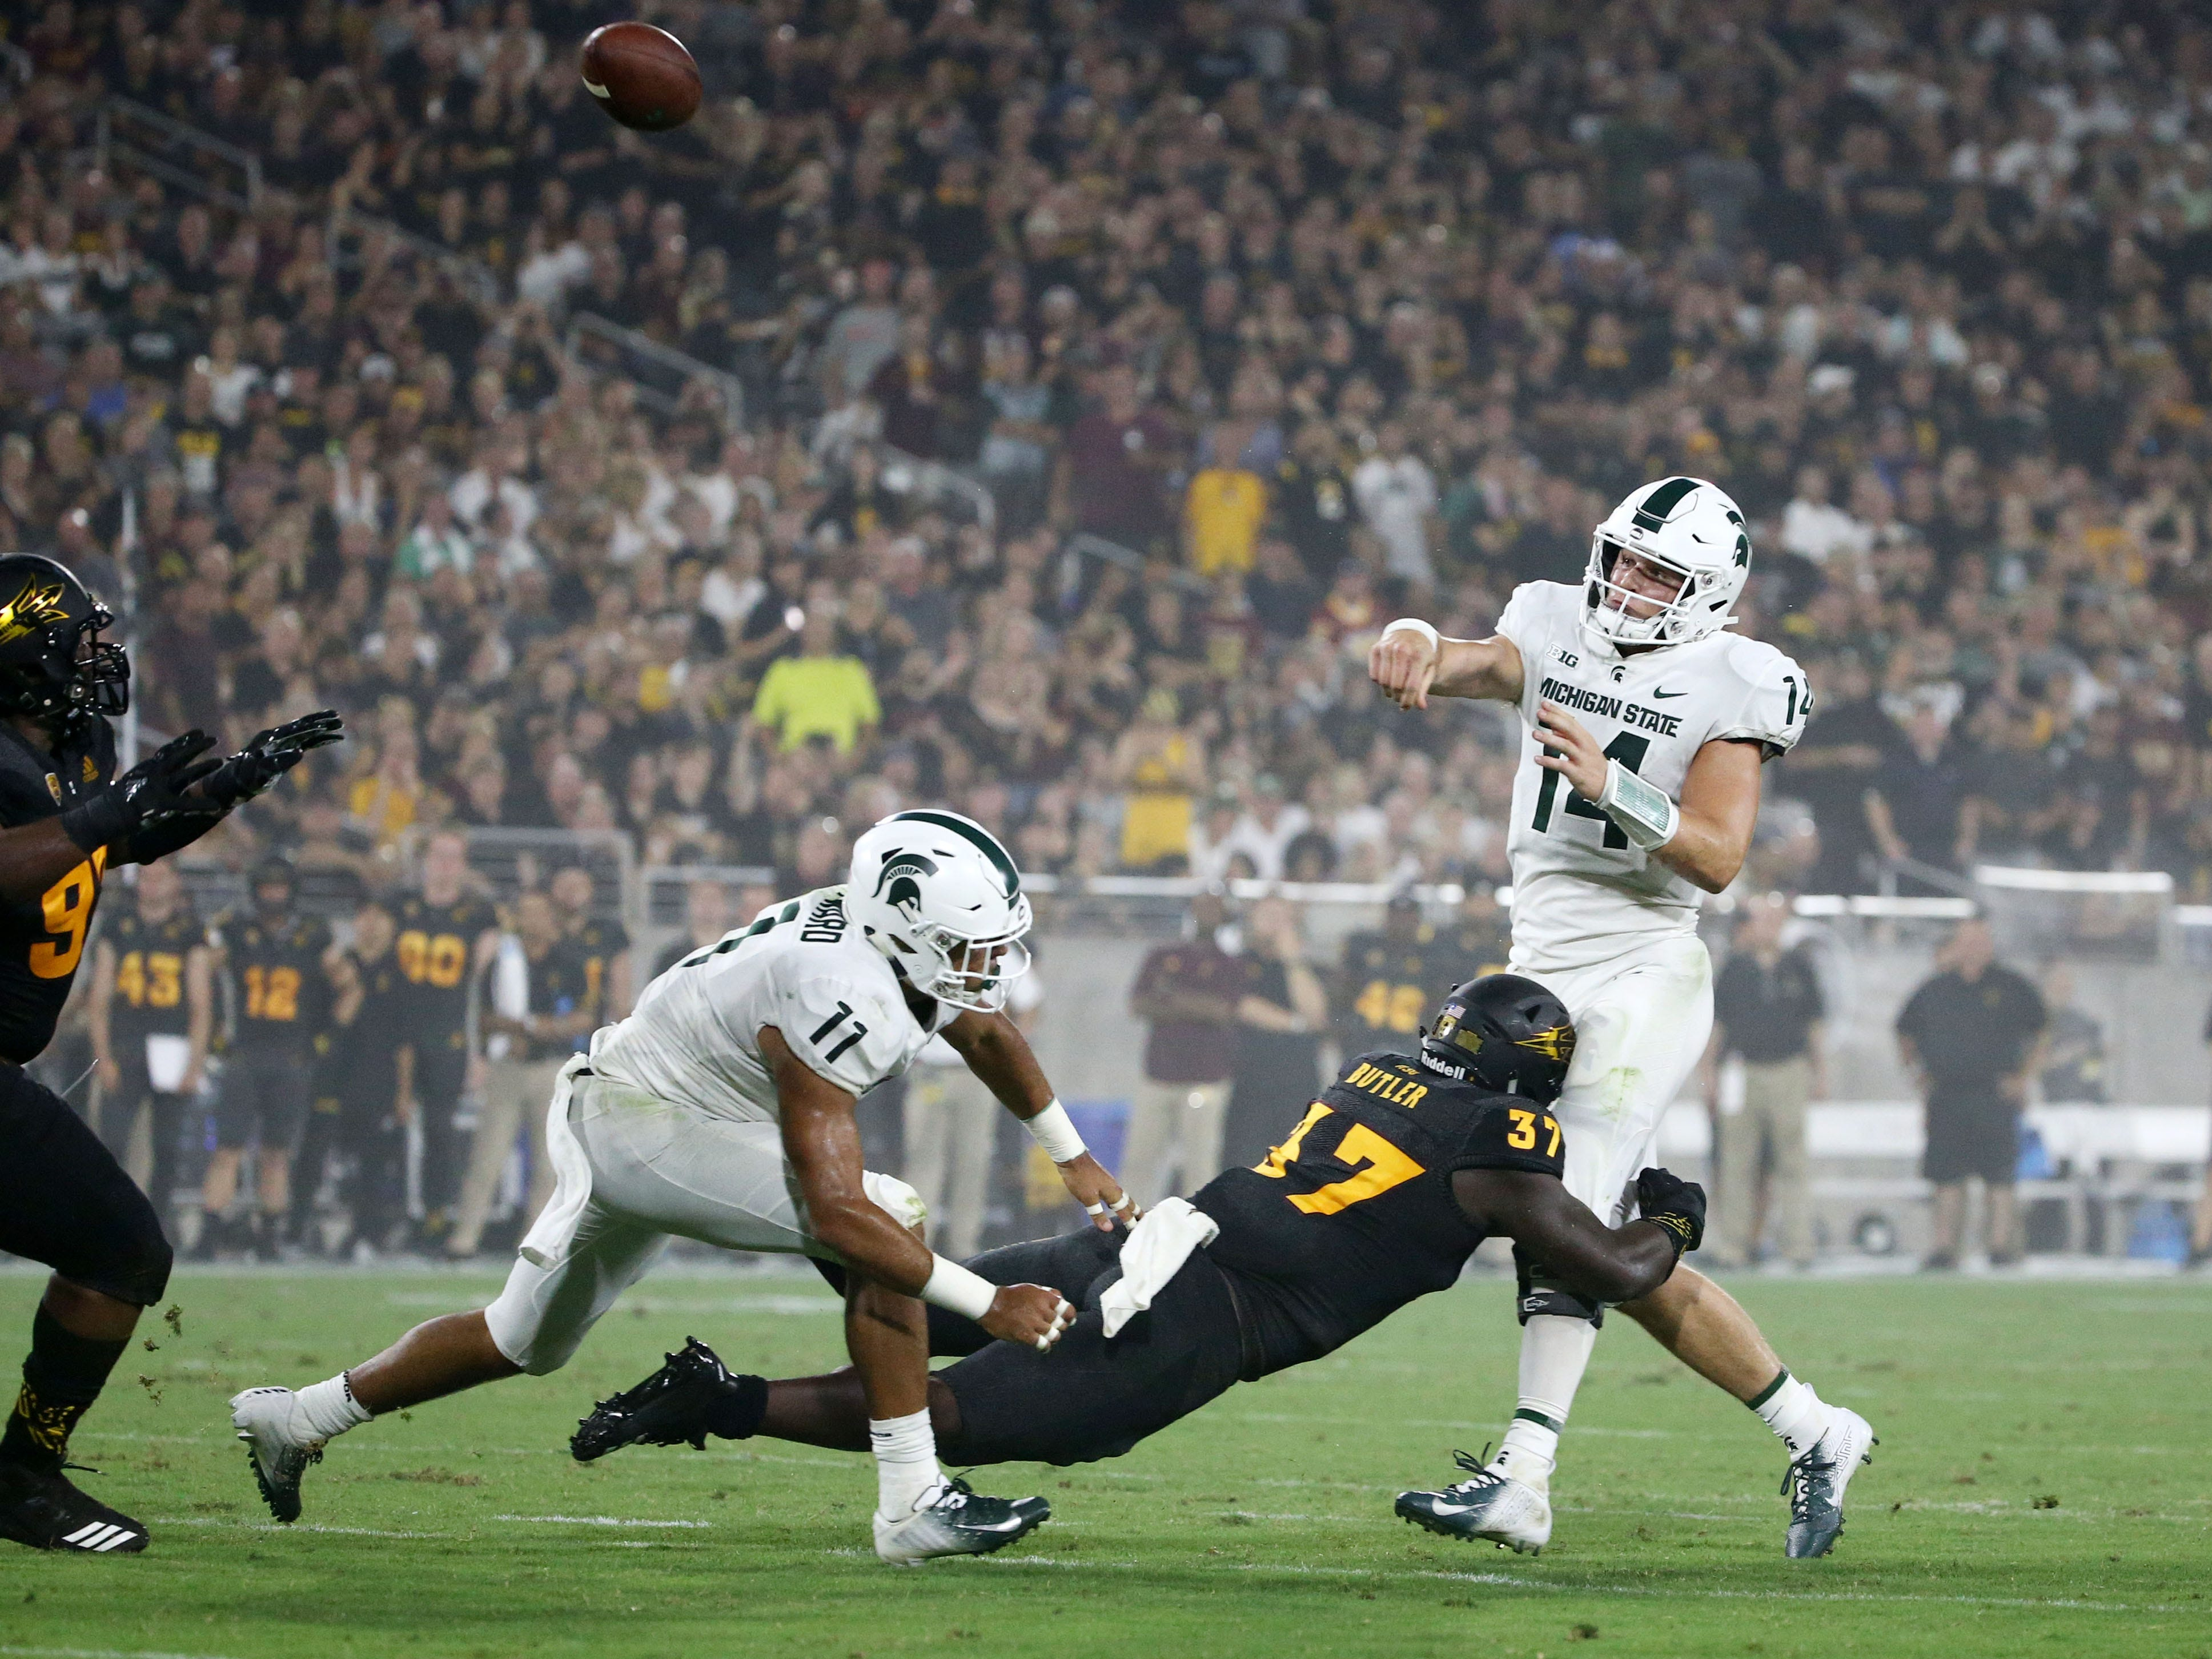 Arizona State linebacker Darien Butler pressures the pass by Michigan State quarterback Brian Lewerke in the first half on Sep. 8, 2018, at Sun Devil Stadium.